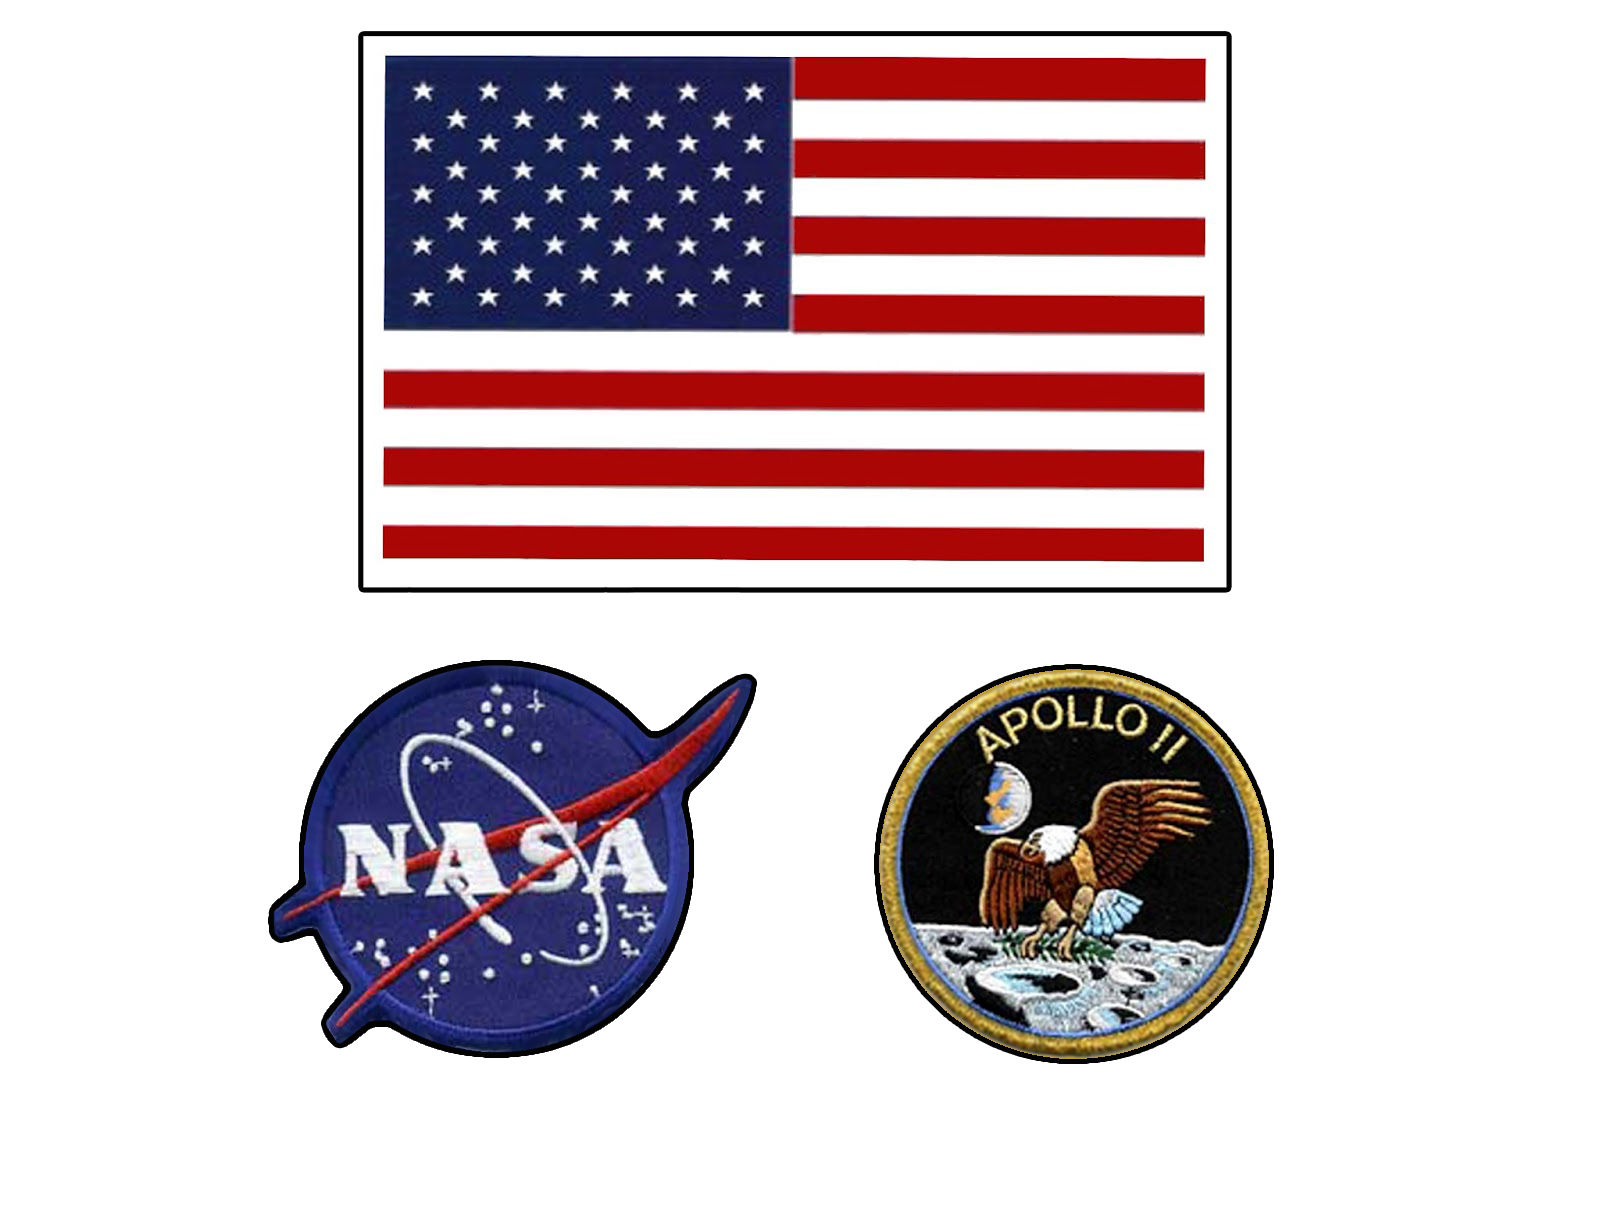 nasa patches on sleeve - photo #47